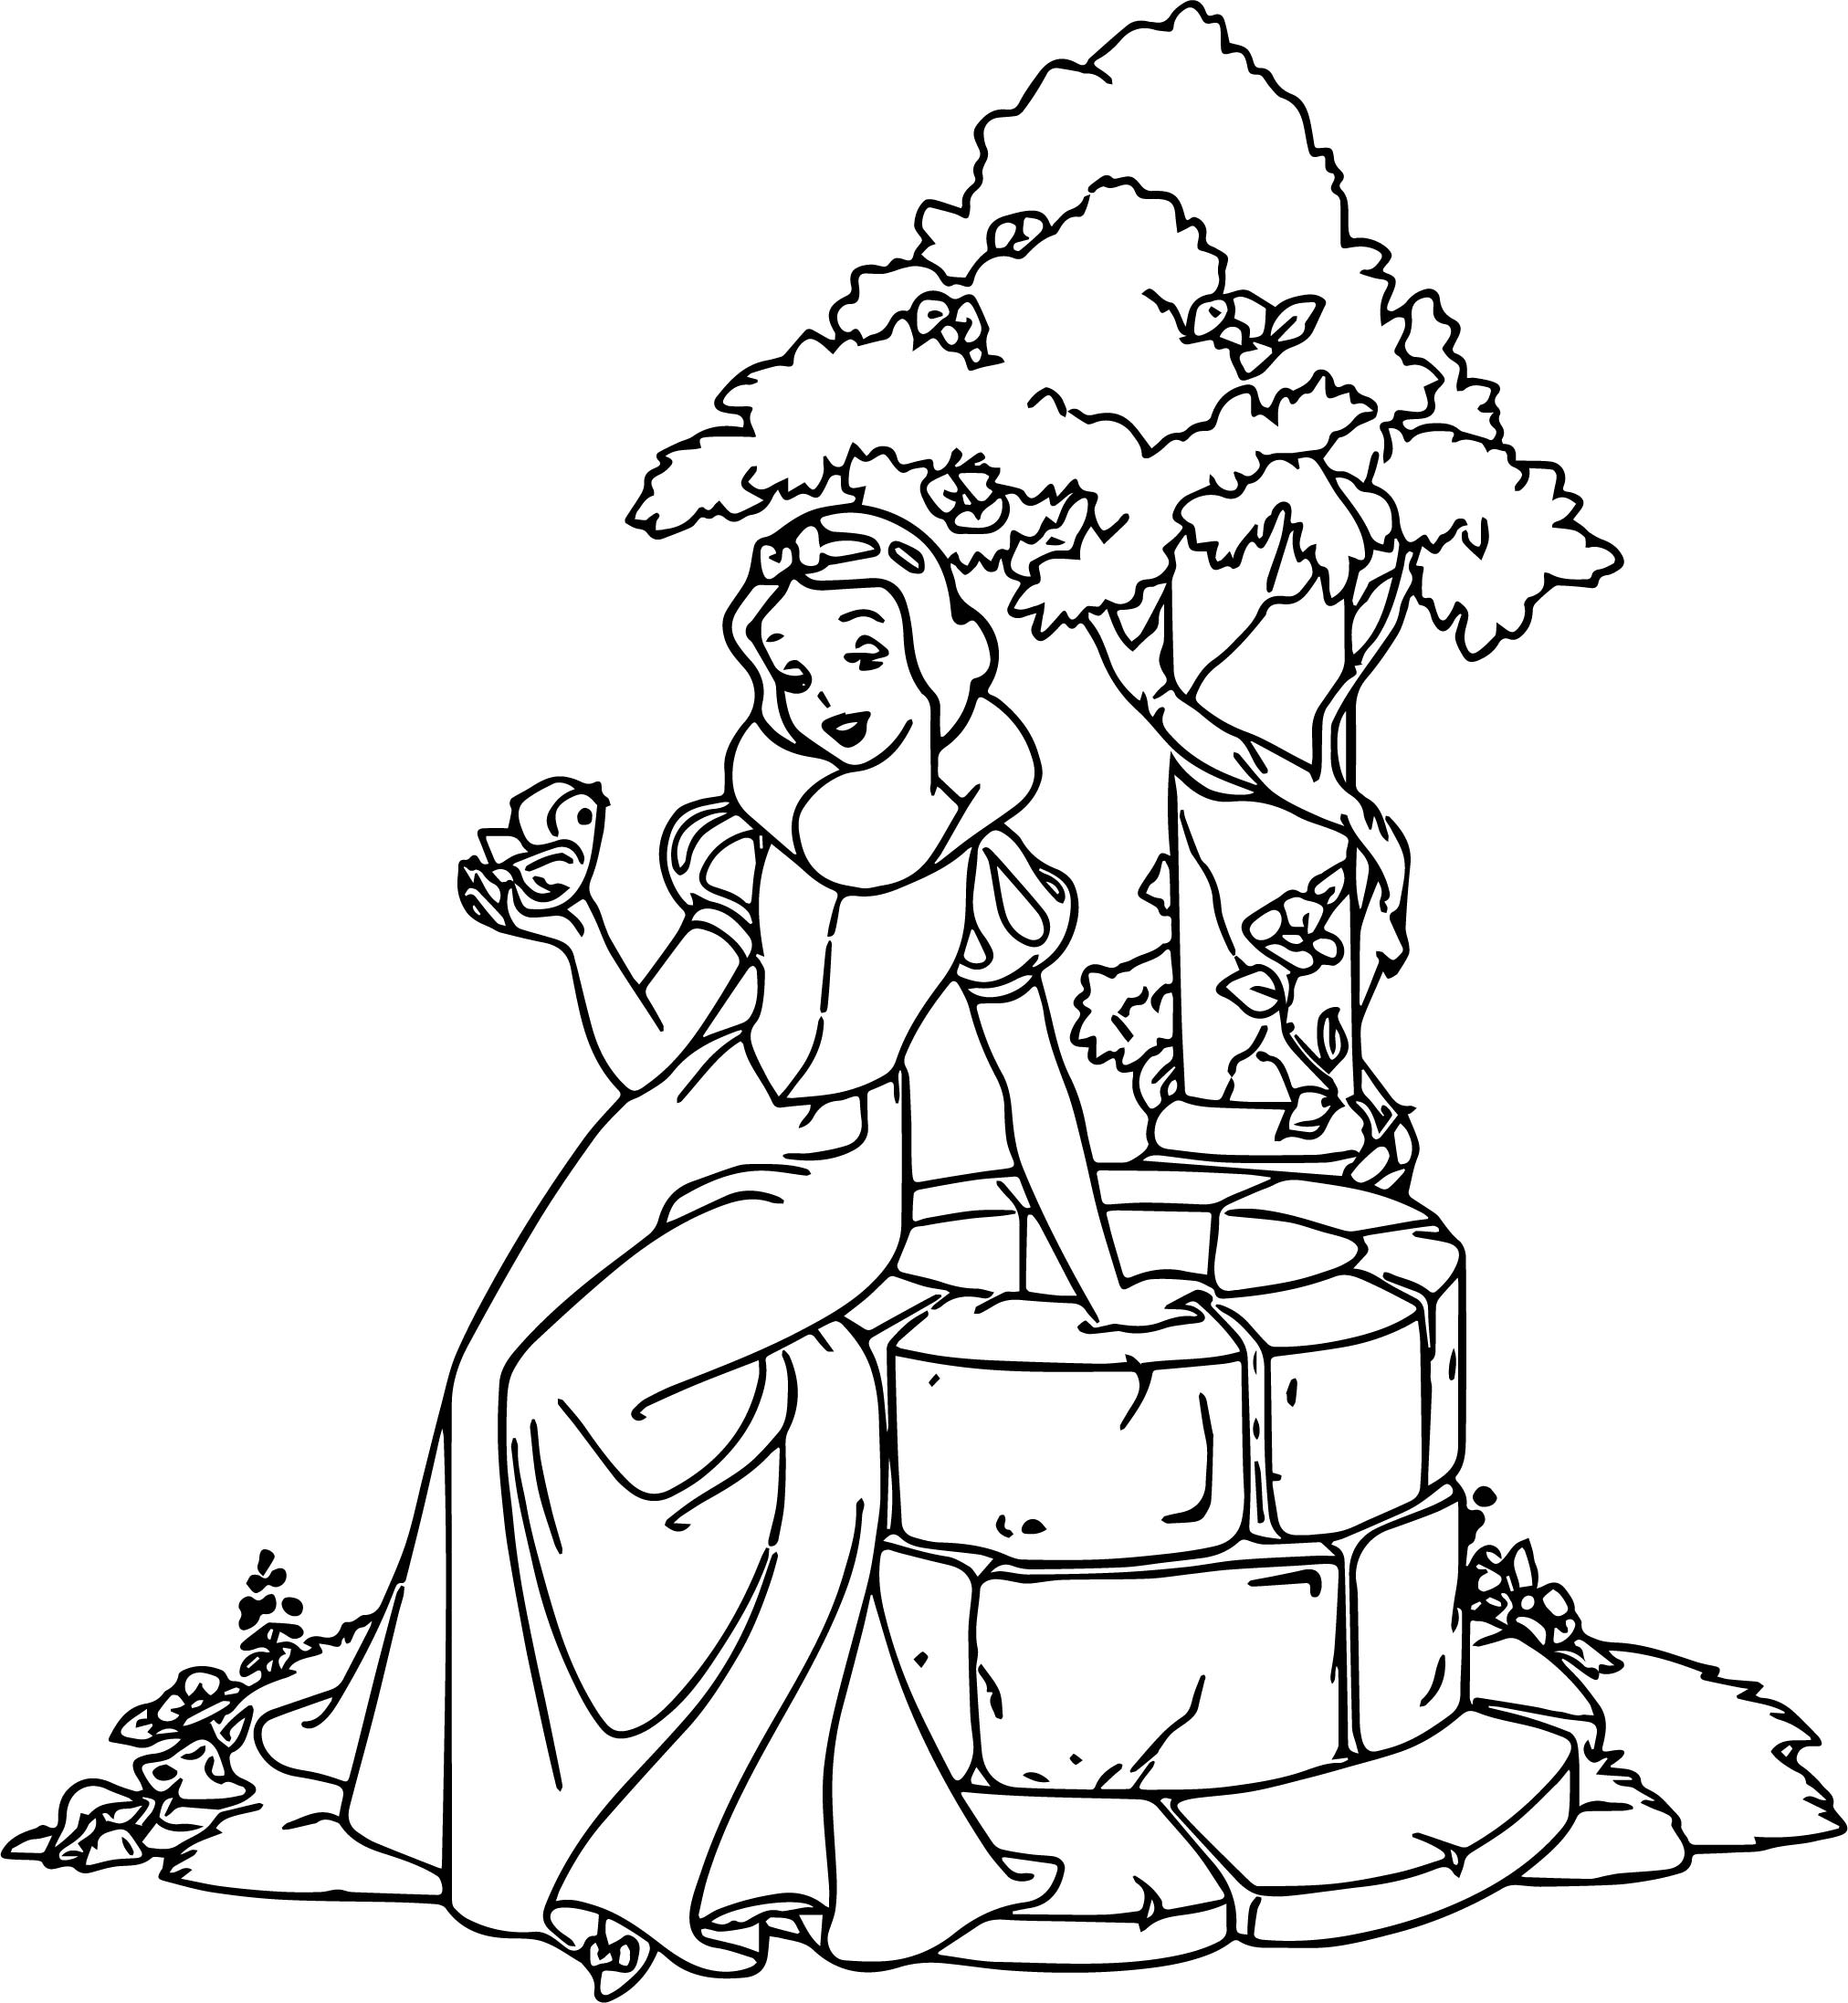 Heat Miser Coloring Pages Coloring Coloring Pages